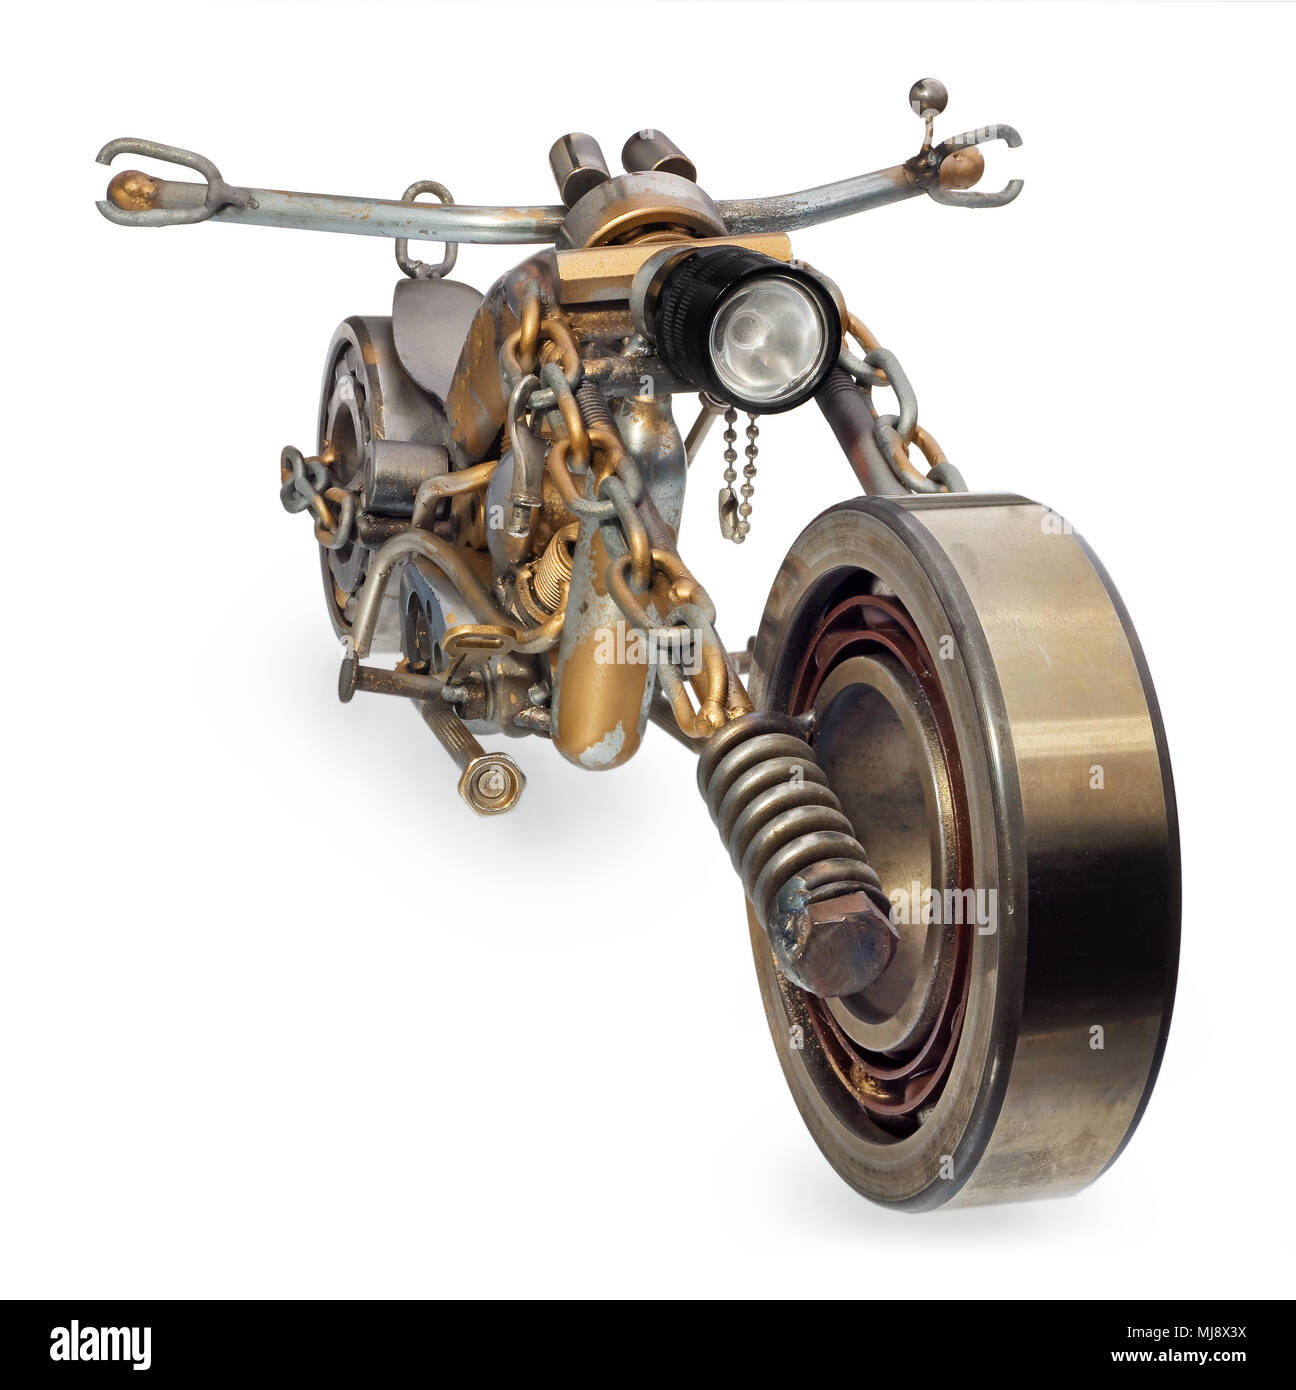 Handmade motorcycle, chopper, cruiser made of metal parts, bearings, screwdrivers, motor candles, wires, chains. A motorbike model isolated on a white - Stock Image